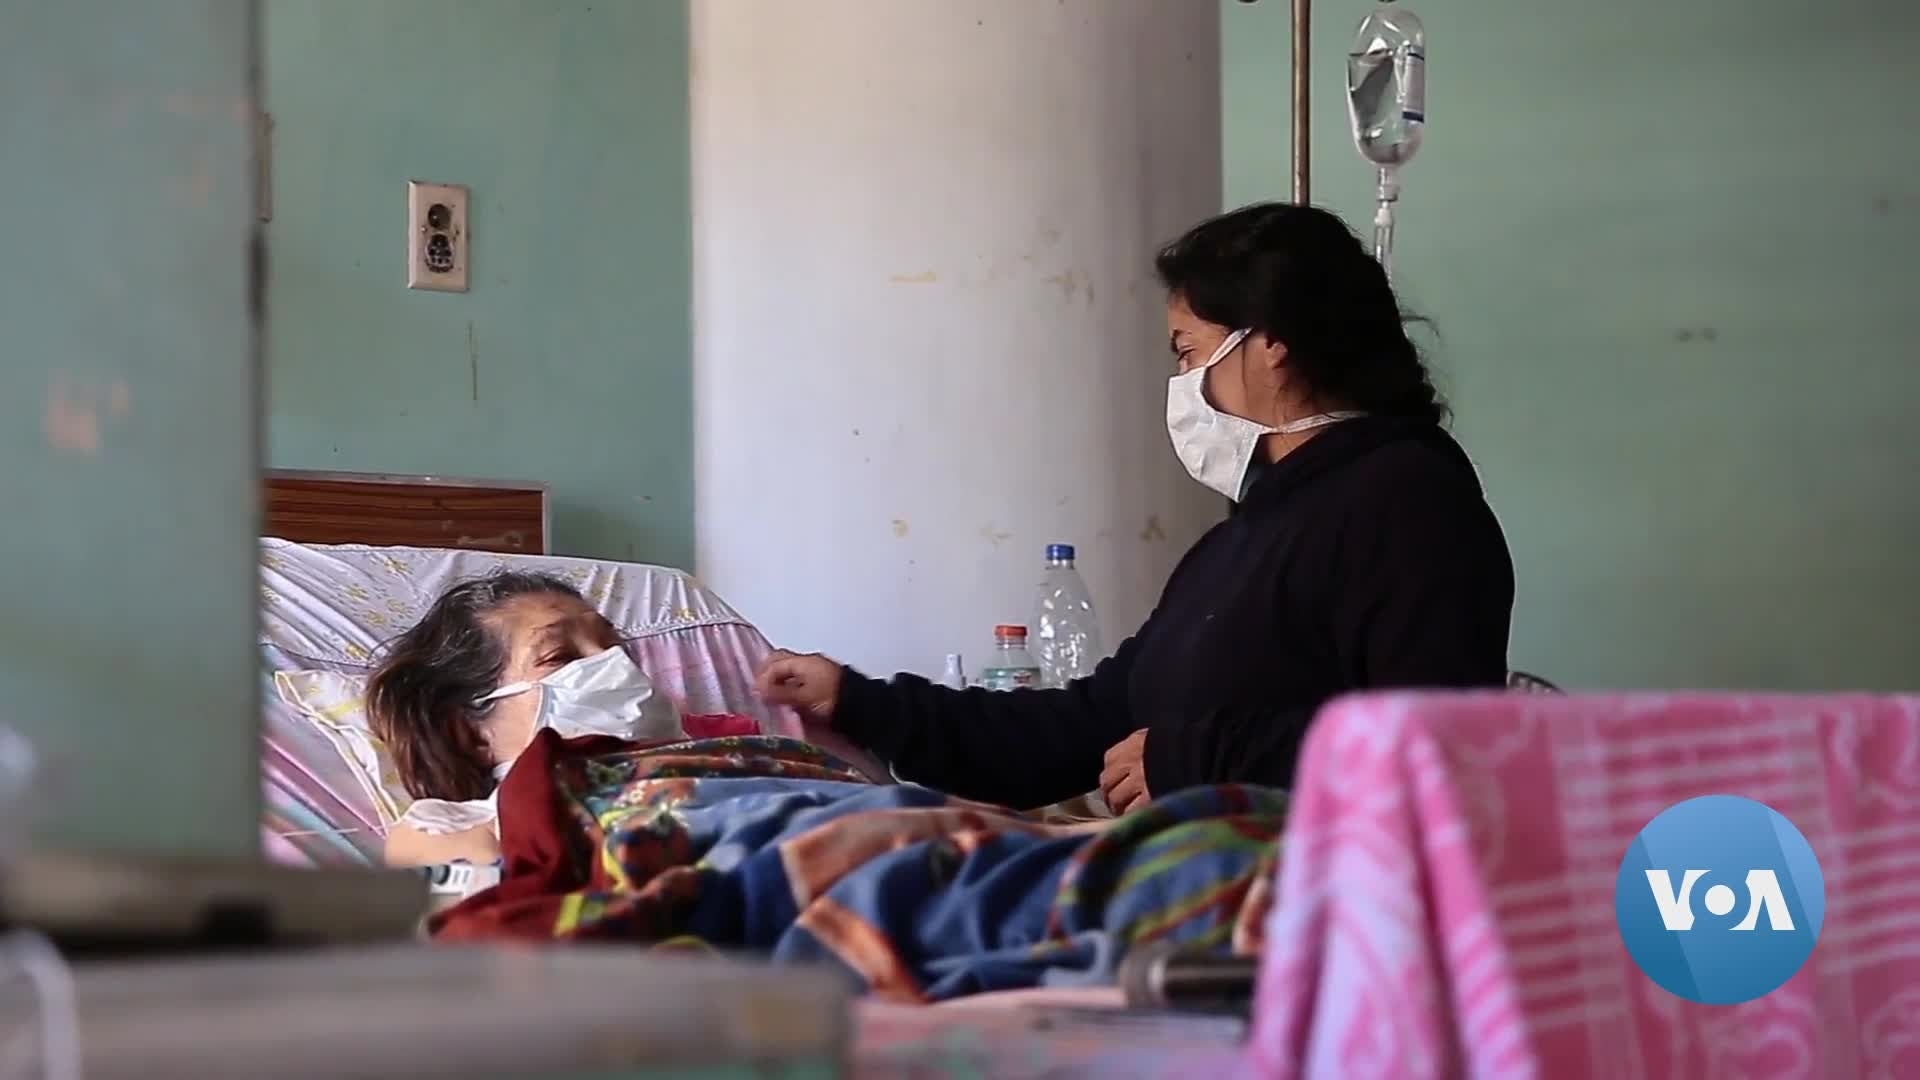 Venezuela's Main Public Hospital Dangerously Unprepared for Coronavirus